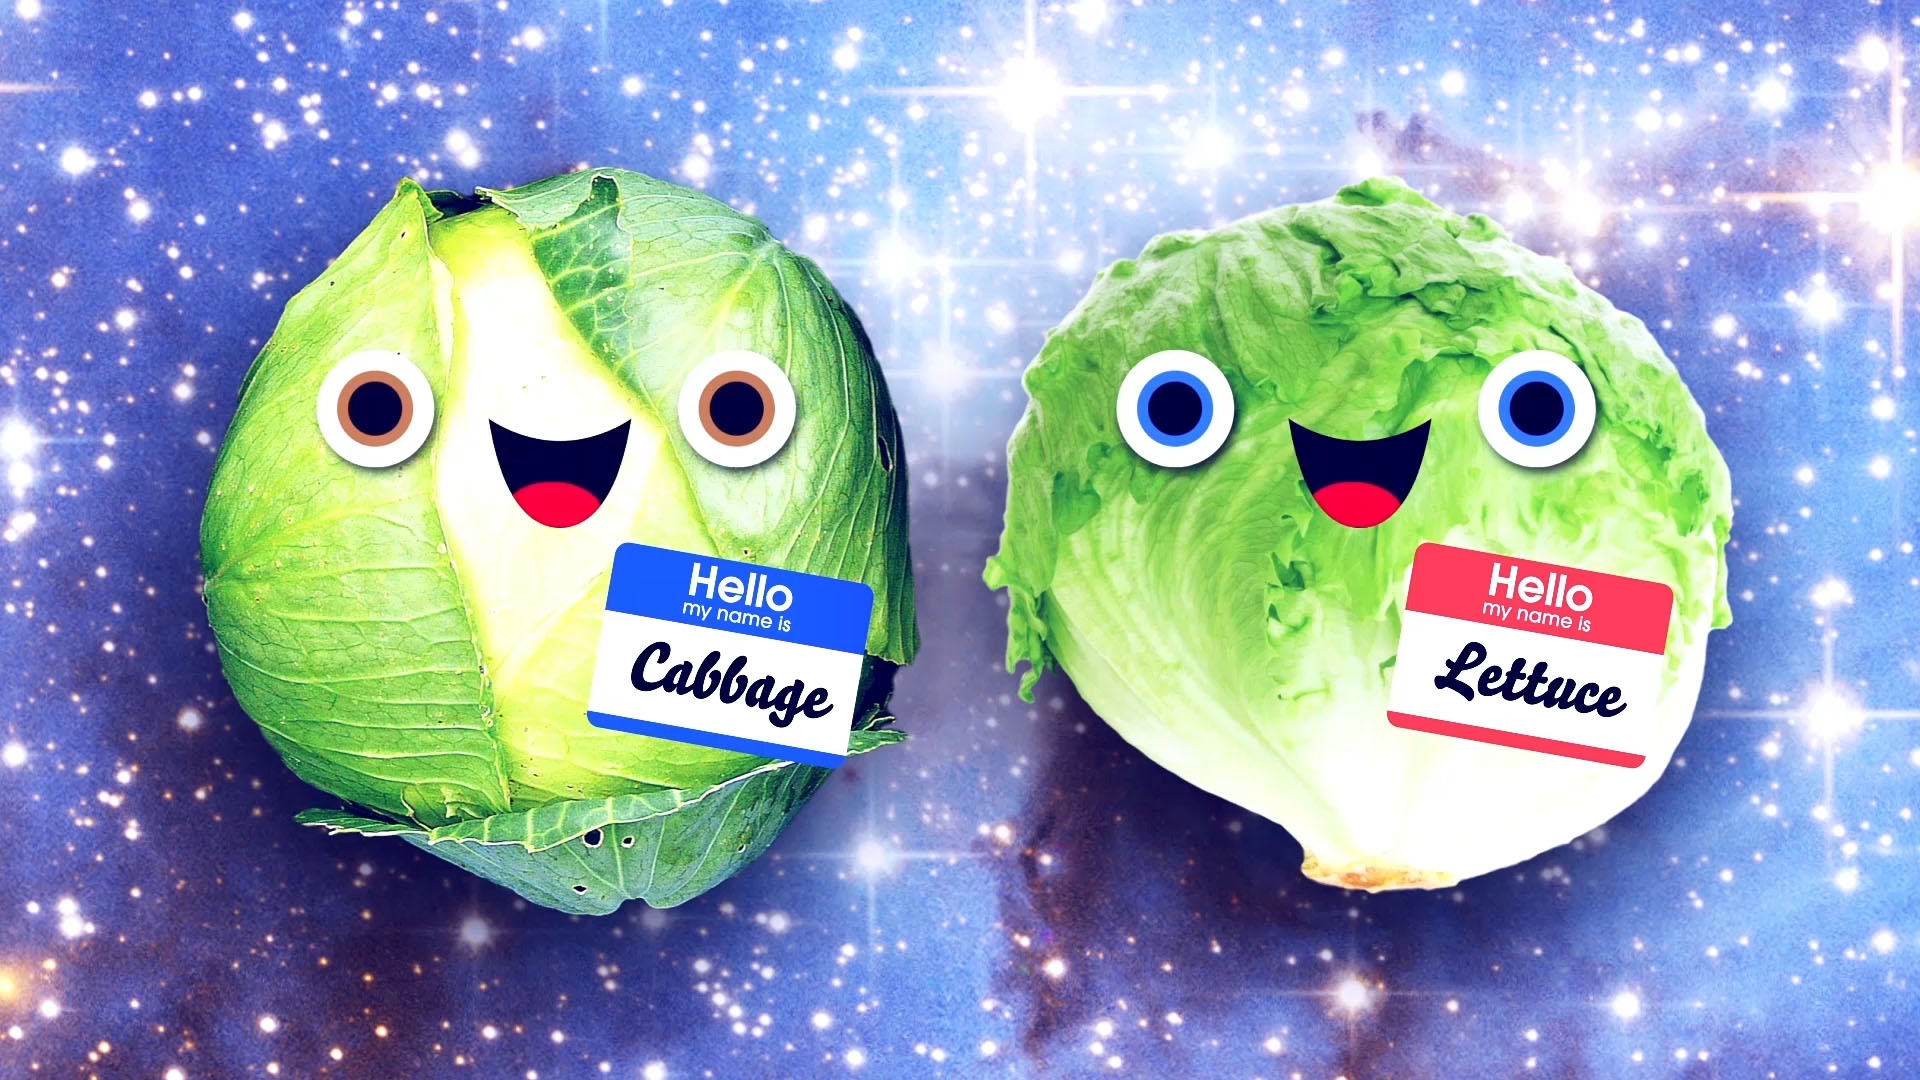 don't mix us up  A series of incredibly catchy music videos about things that are easily mixed up but absolutely should not be—like cabbage and lettuce, mustaches and eyebrows and Kentucky and Tennessee. (Animated)